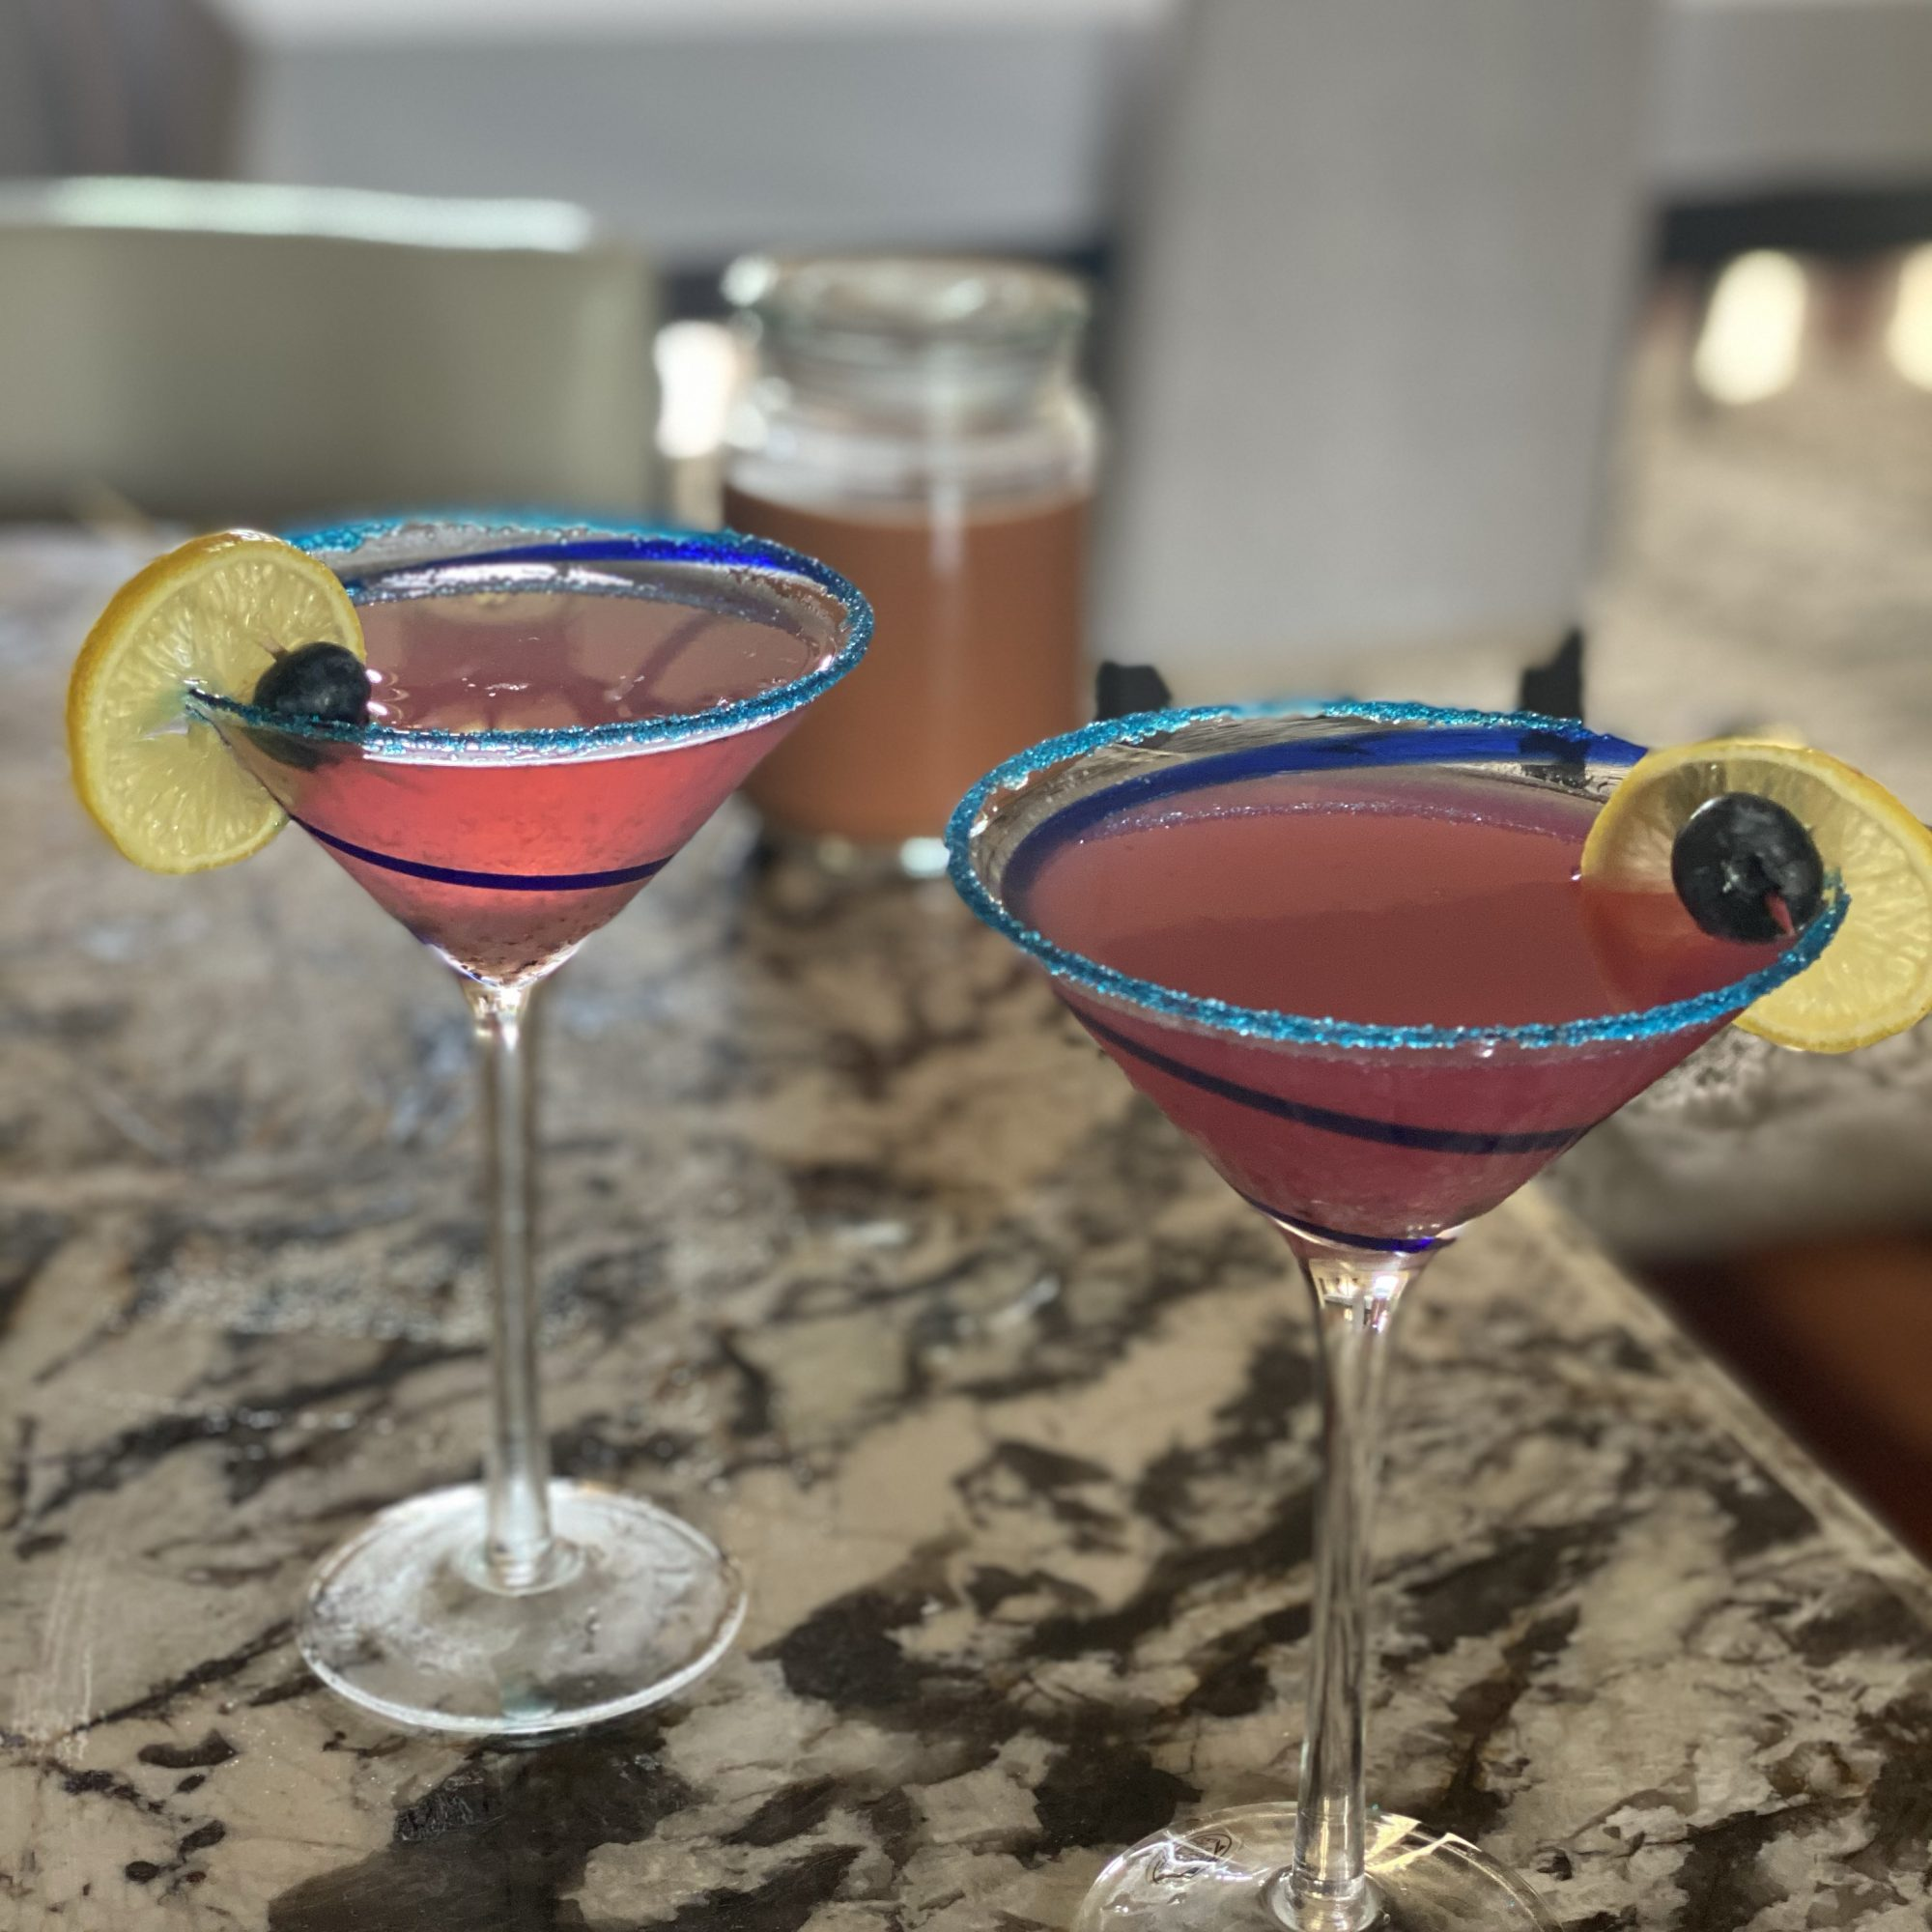 two purple cocktails in martini glasses with lemon wedges